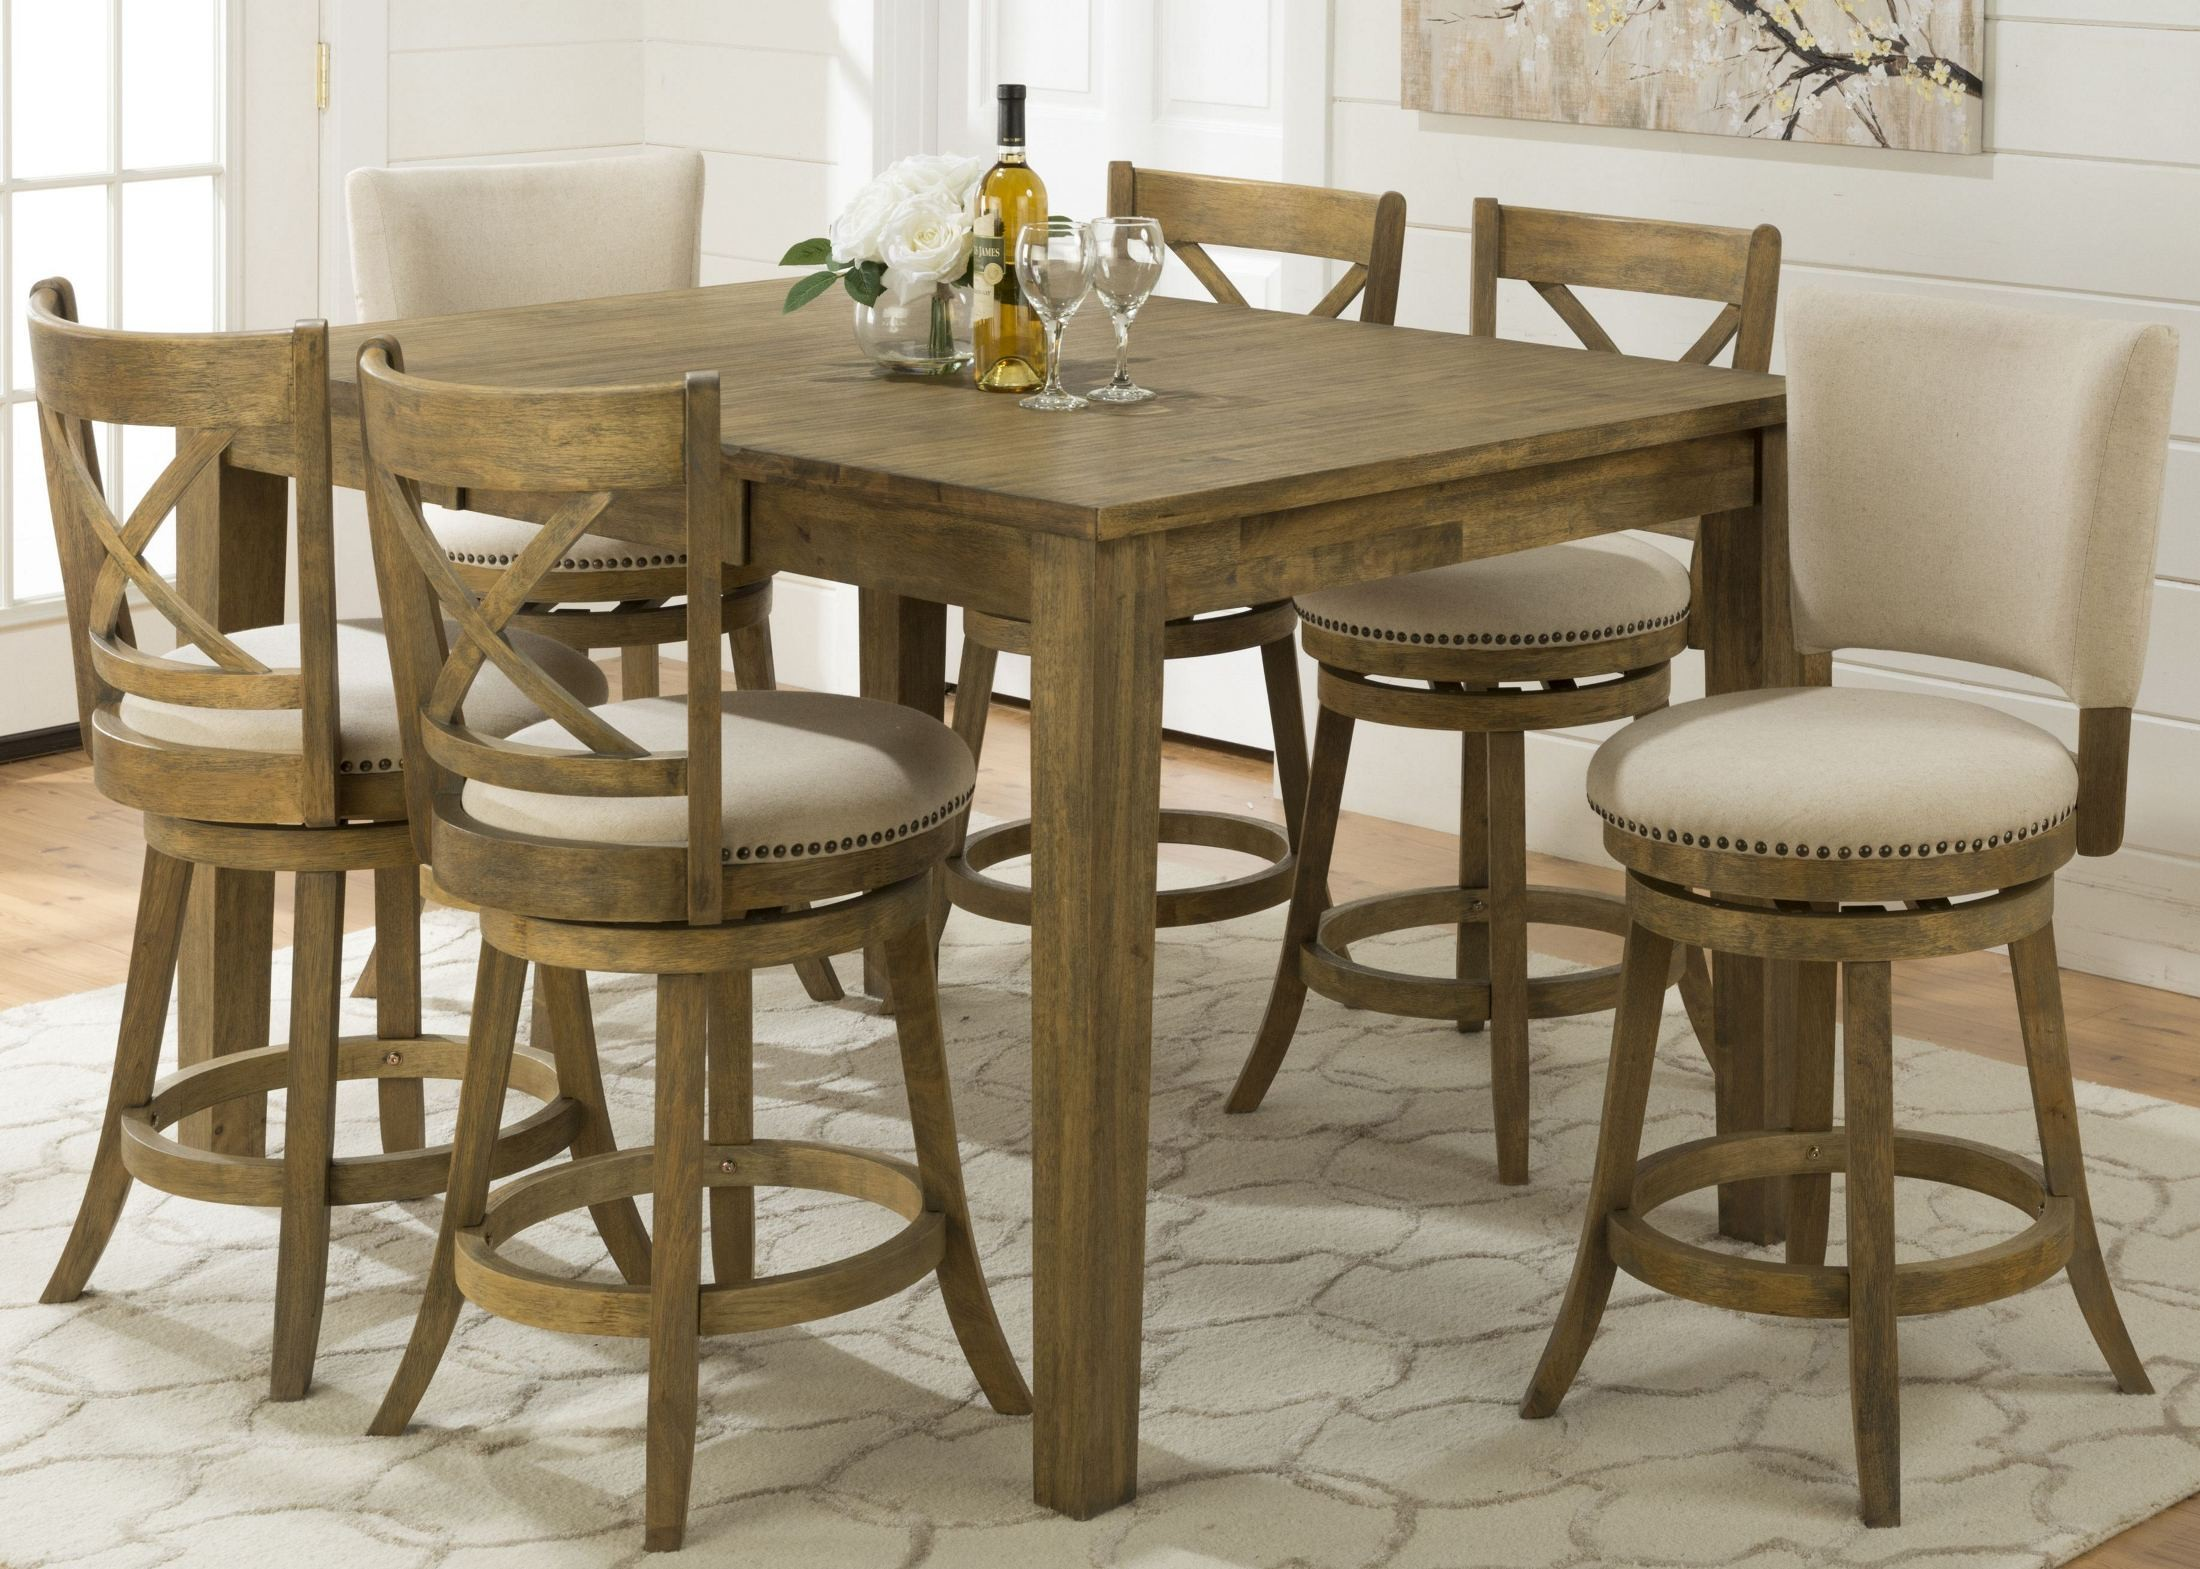 ... Landing Extendable Counter Height Dining Table, 916-60, Jofran